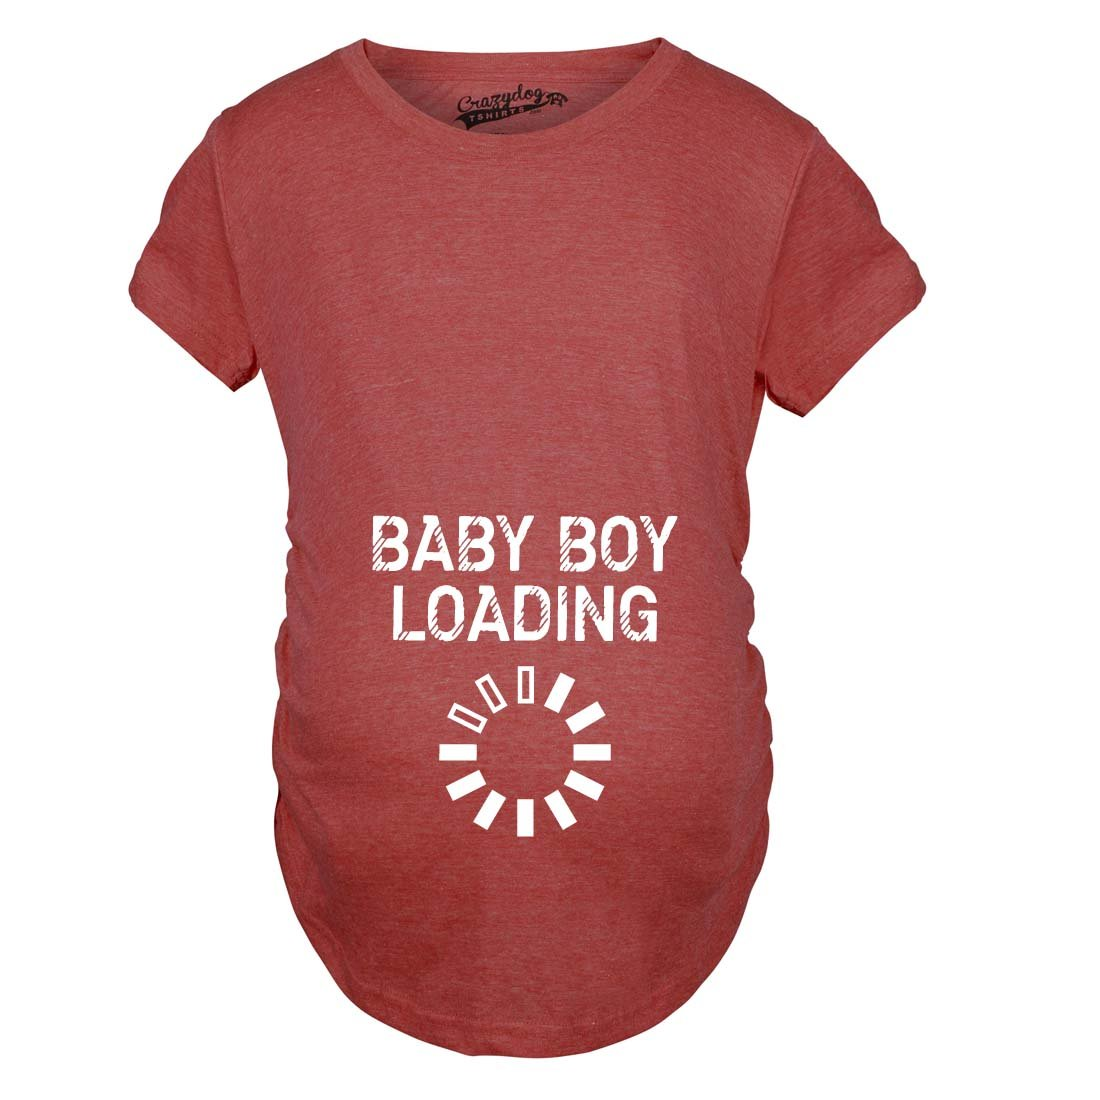 Crazy Dog T-Shirts Maternity Baby Boy Loading Funny Nerdy Pregnancy Announcement T Shirt Crazy Dog Tshirts